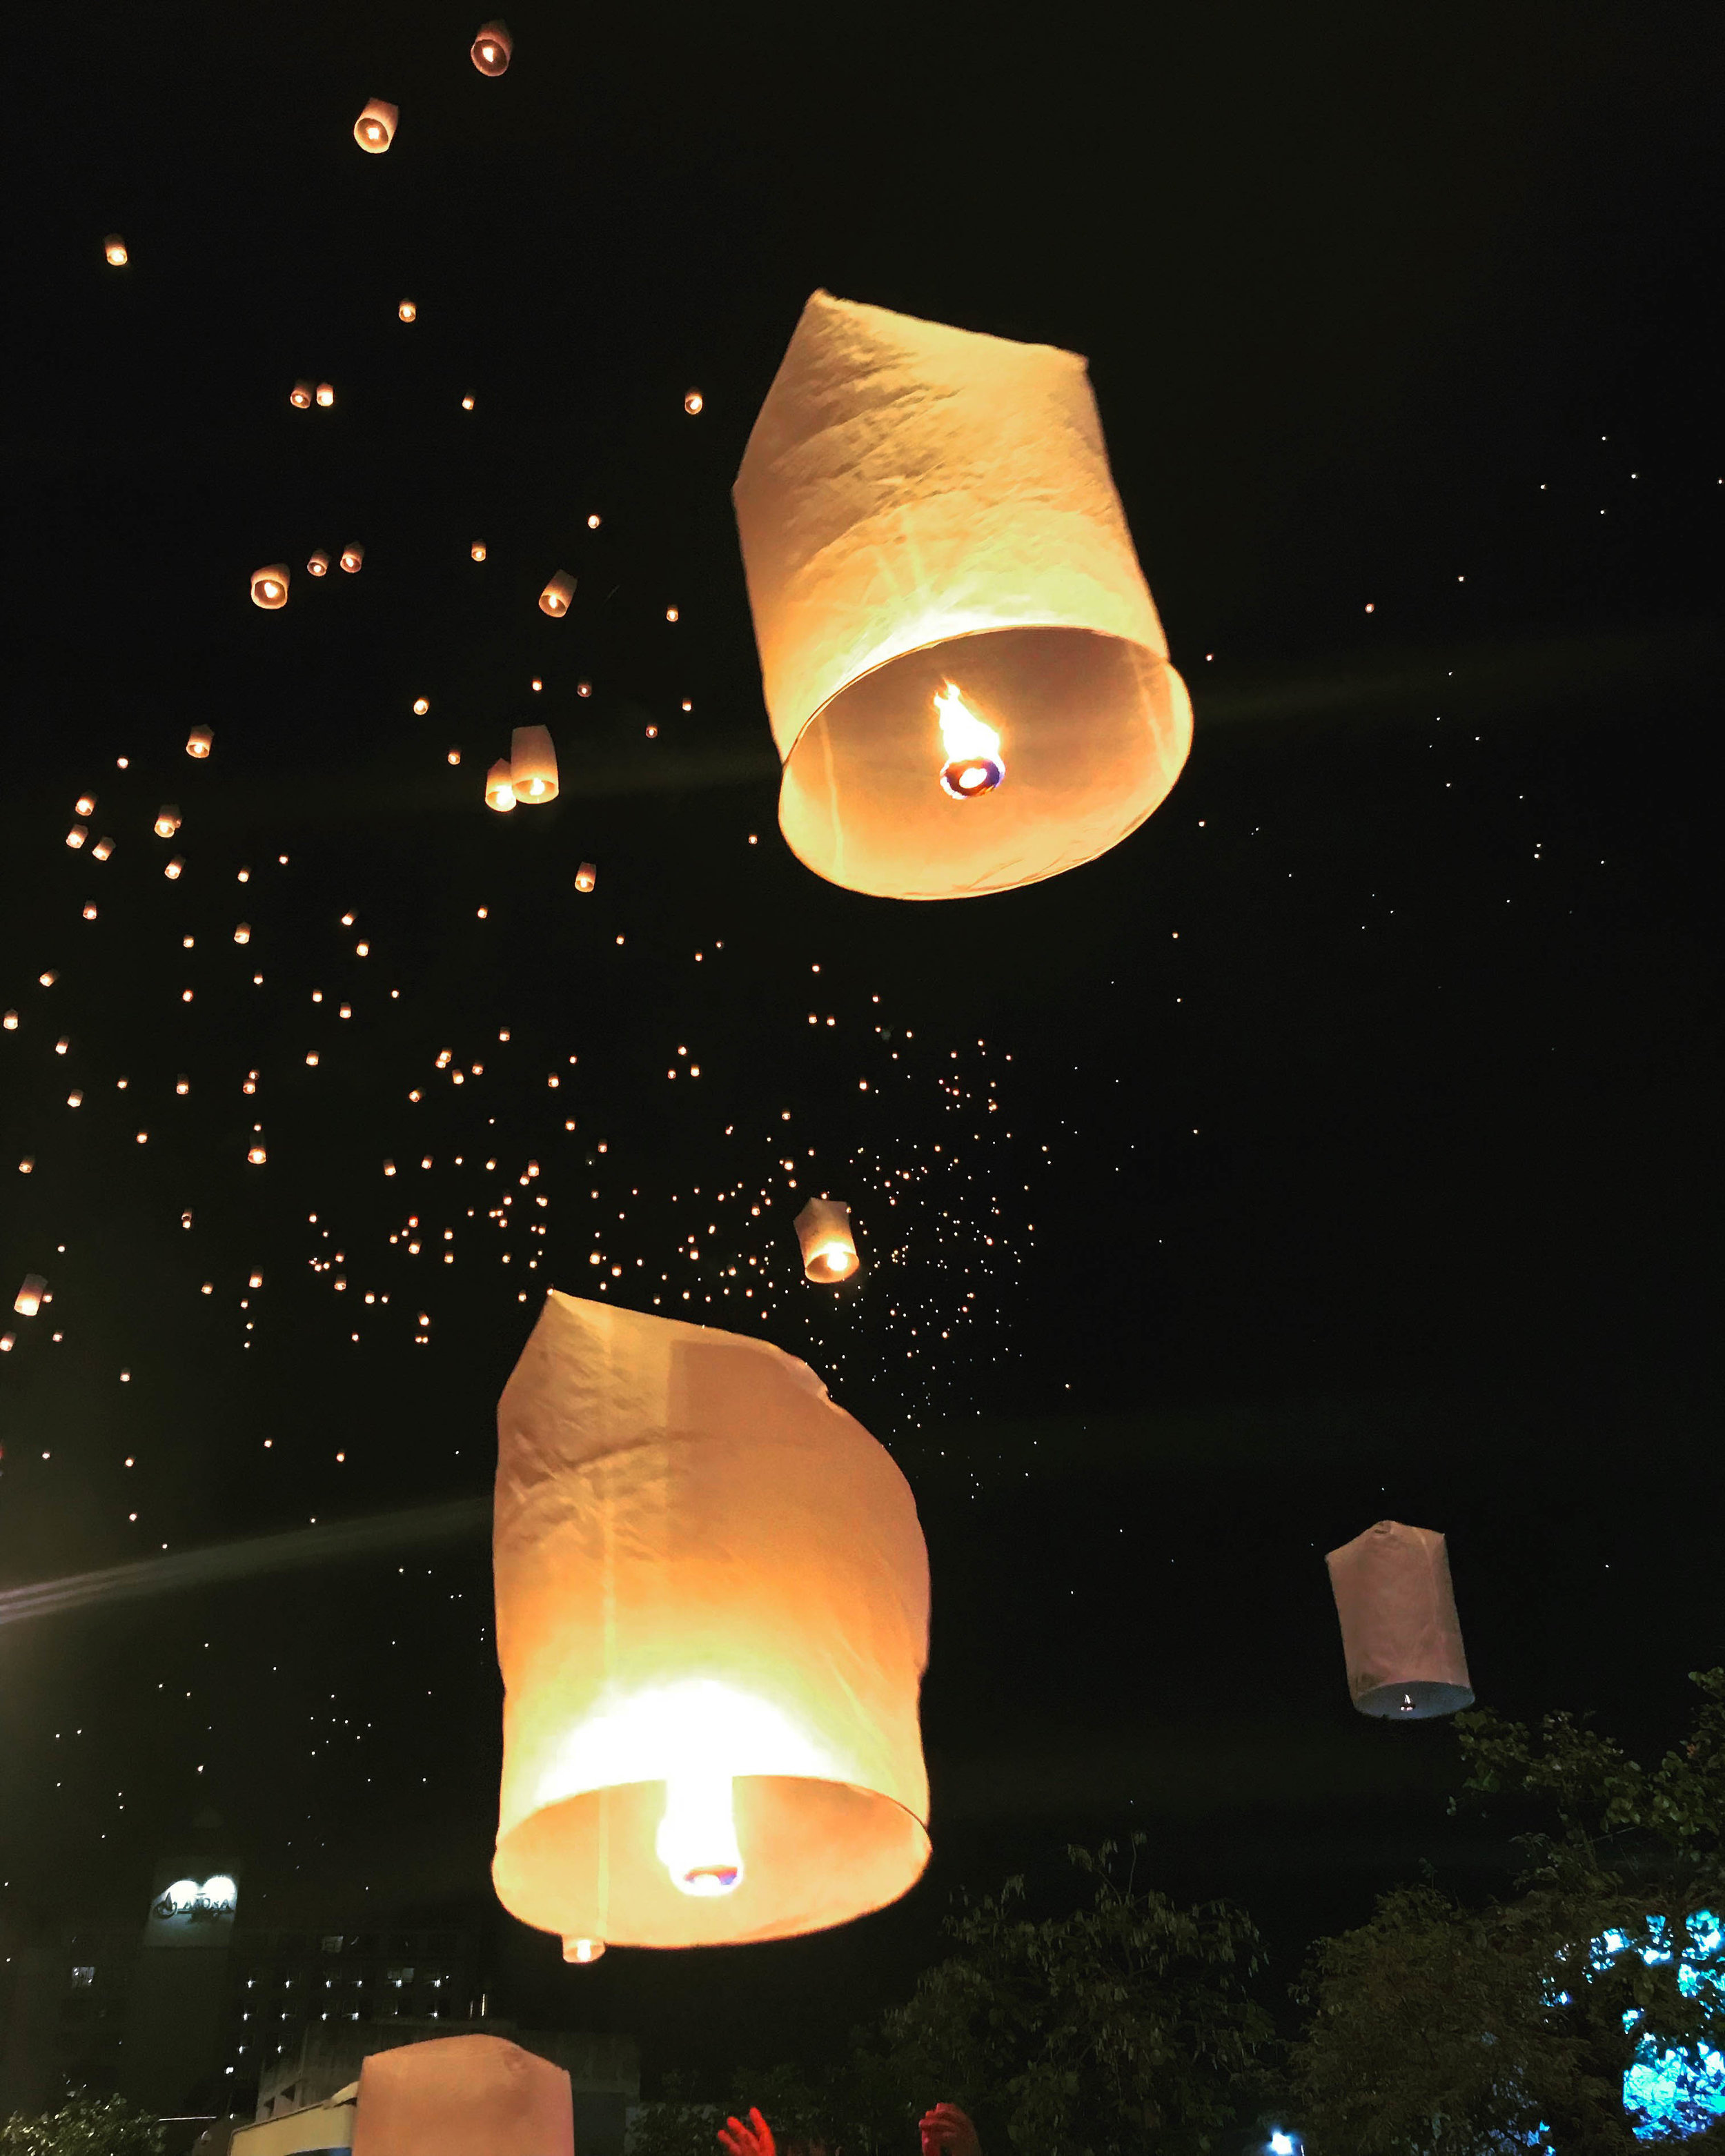 Thailand - Chiang Mai - New Years Eve - lanterns